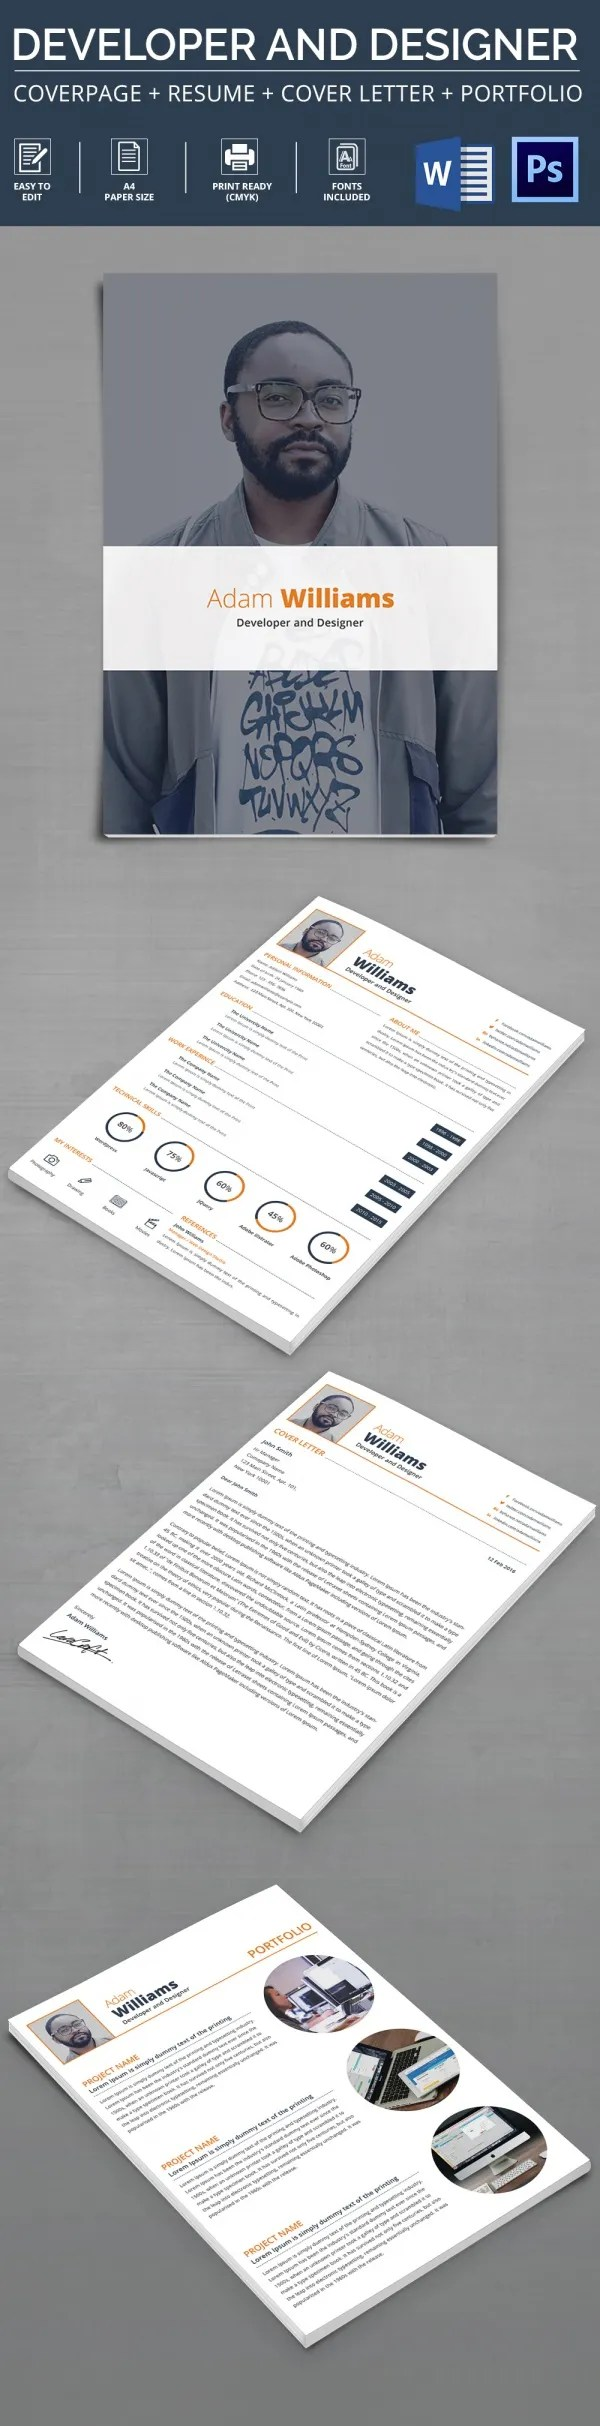 Hair Stylist Resume Templates Luxury Fashion Examples Free Downlo. Php  Developer Resume Template Free Word Excel Pdf Format